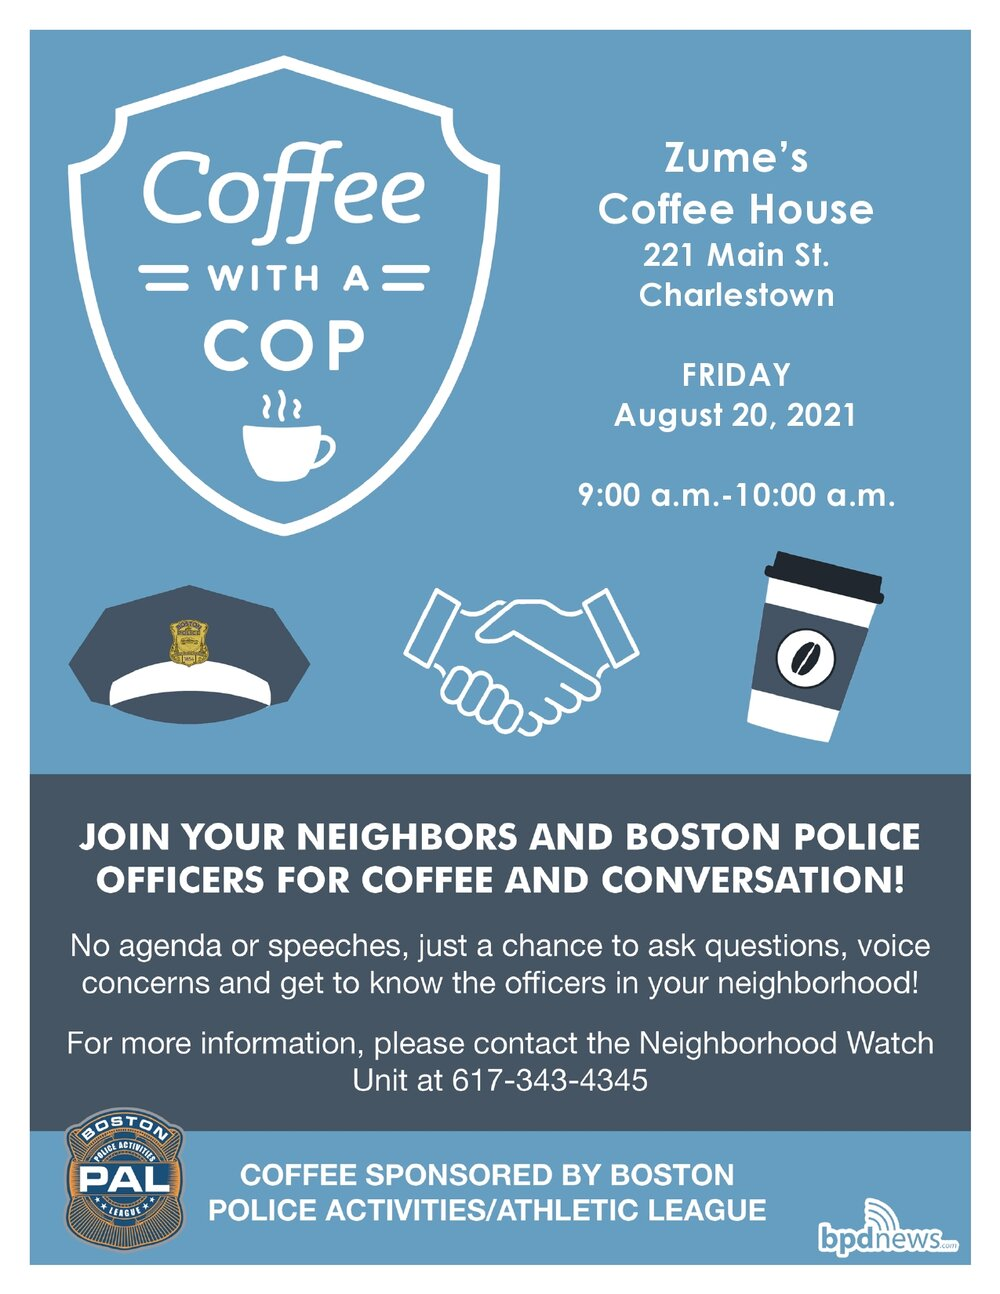 Coffee with a Cop: Please Join us at Zume's Coffee House at 221 Main Street in Charlestown on Friday, August 20, 2021